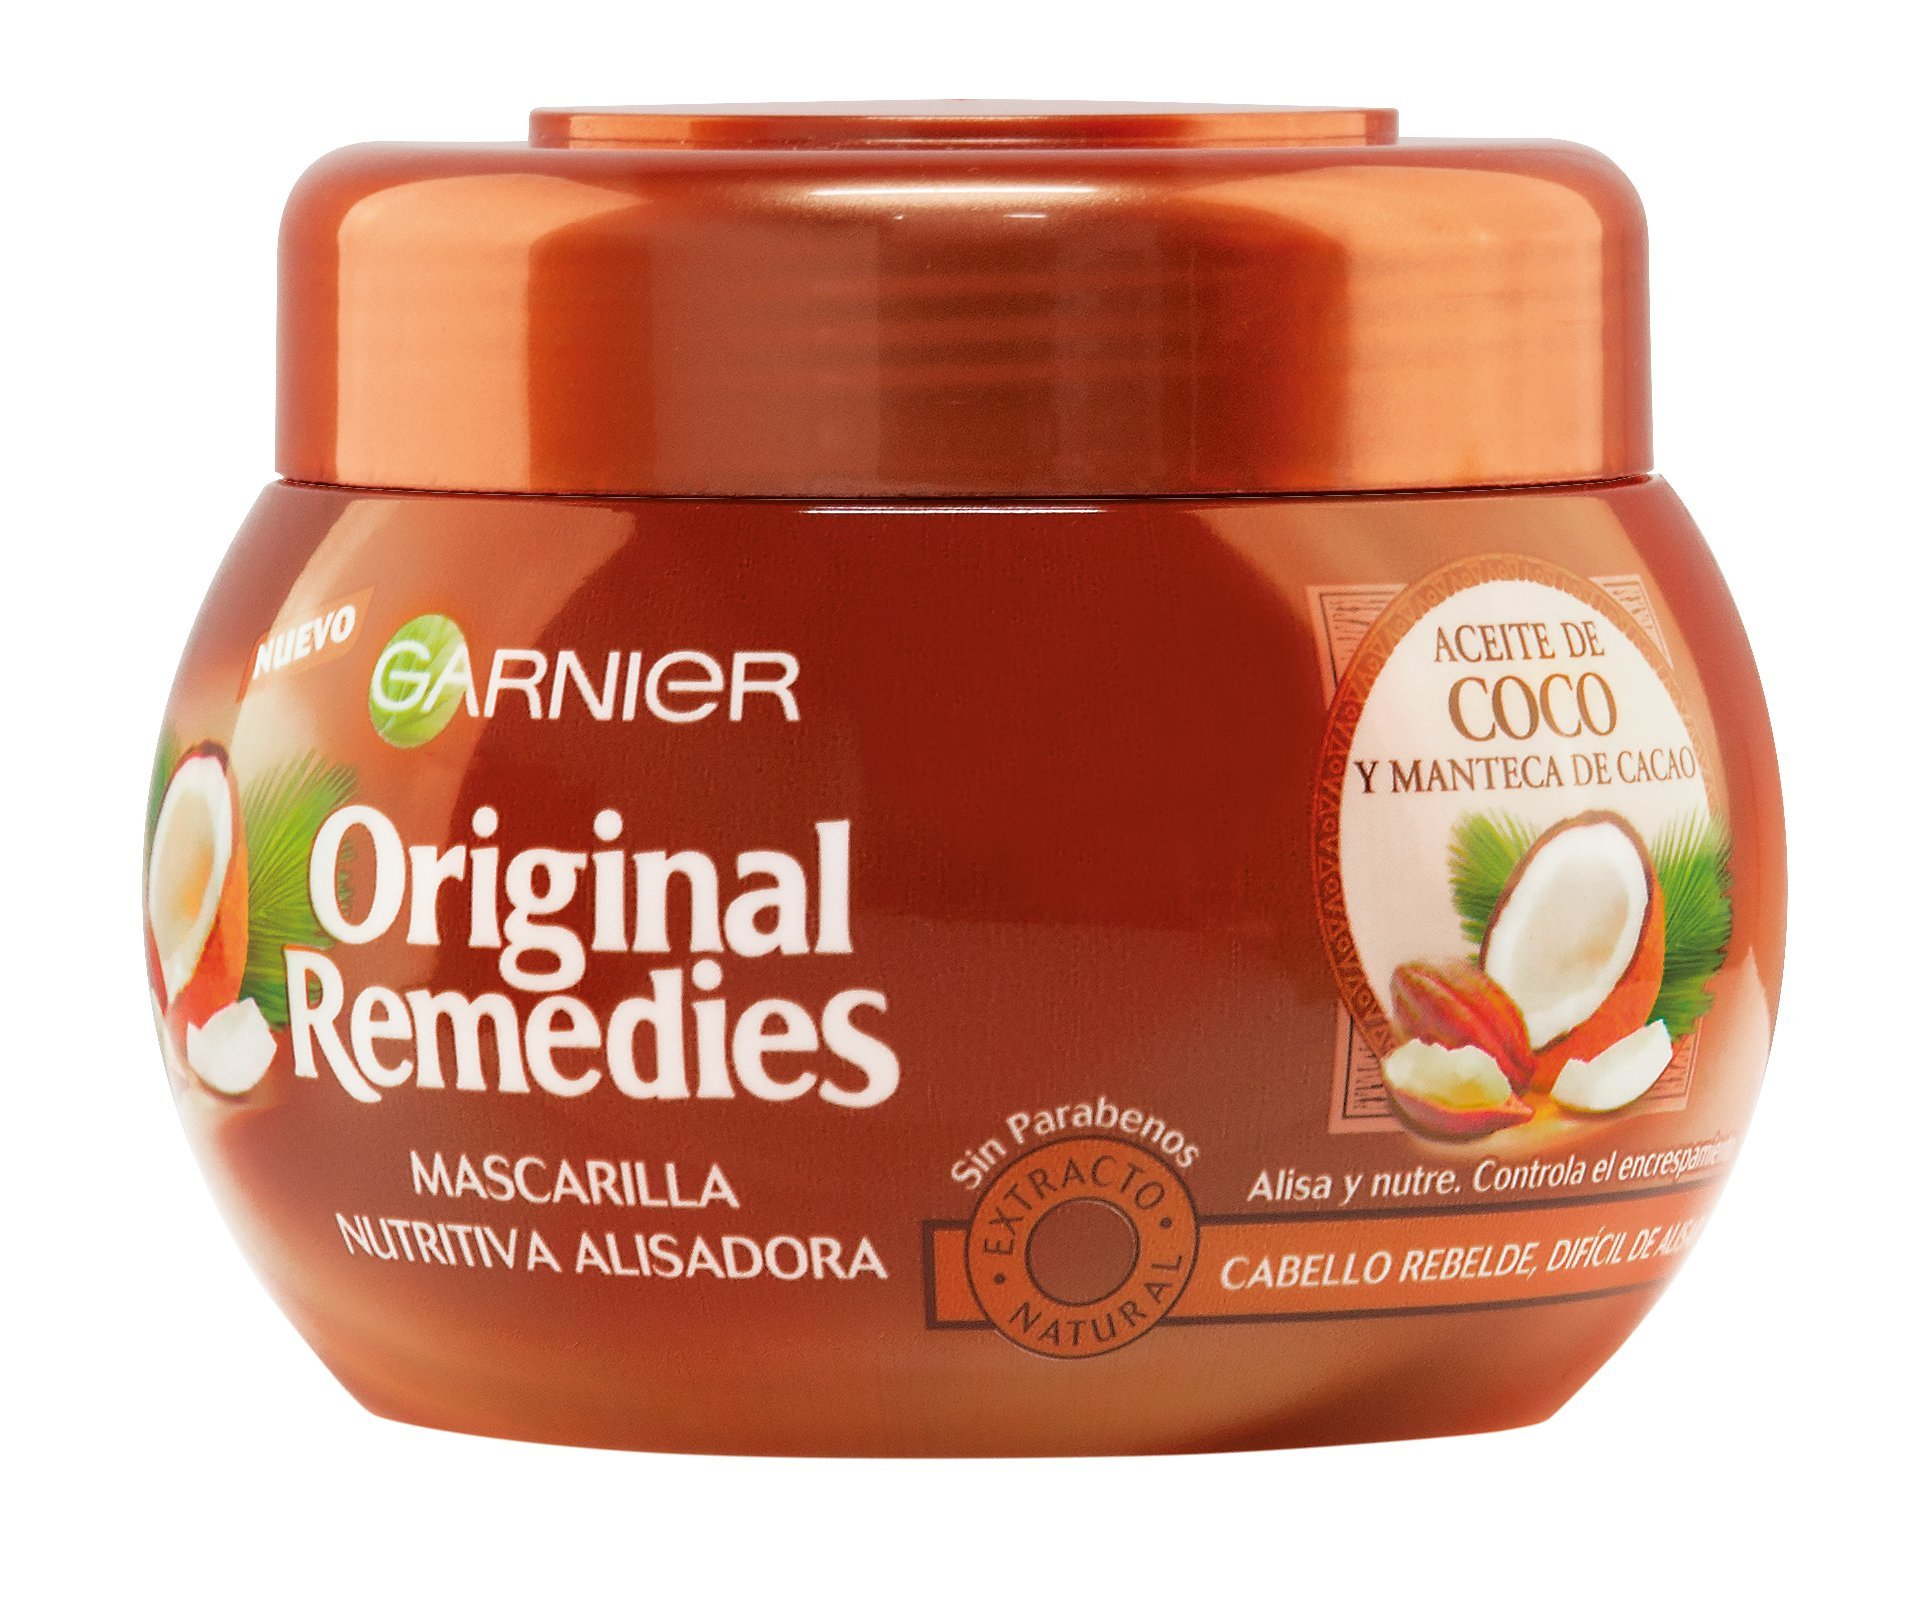 Garnier Original Remedies Mascarilla Coco - Cacao 300 ml product image